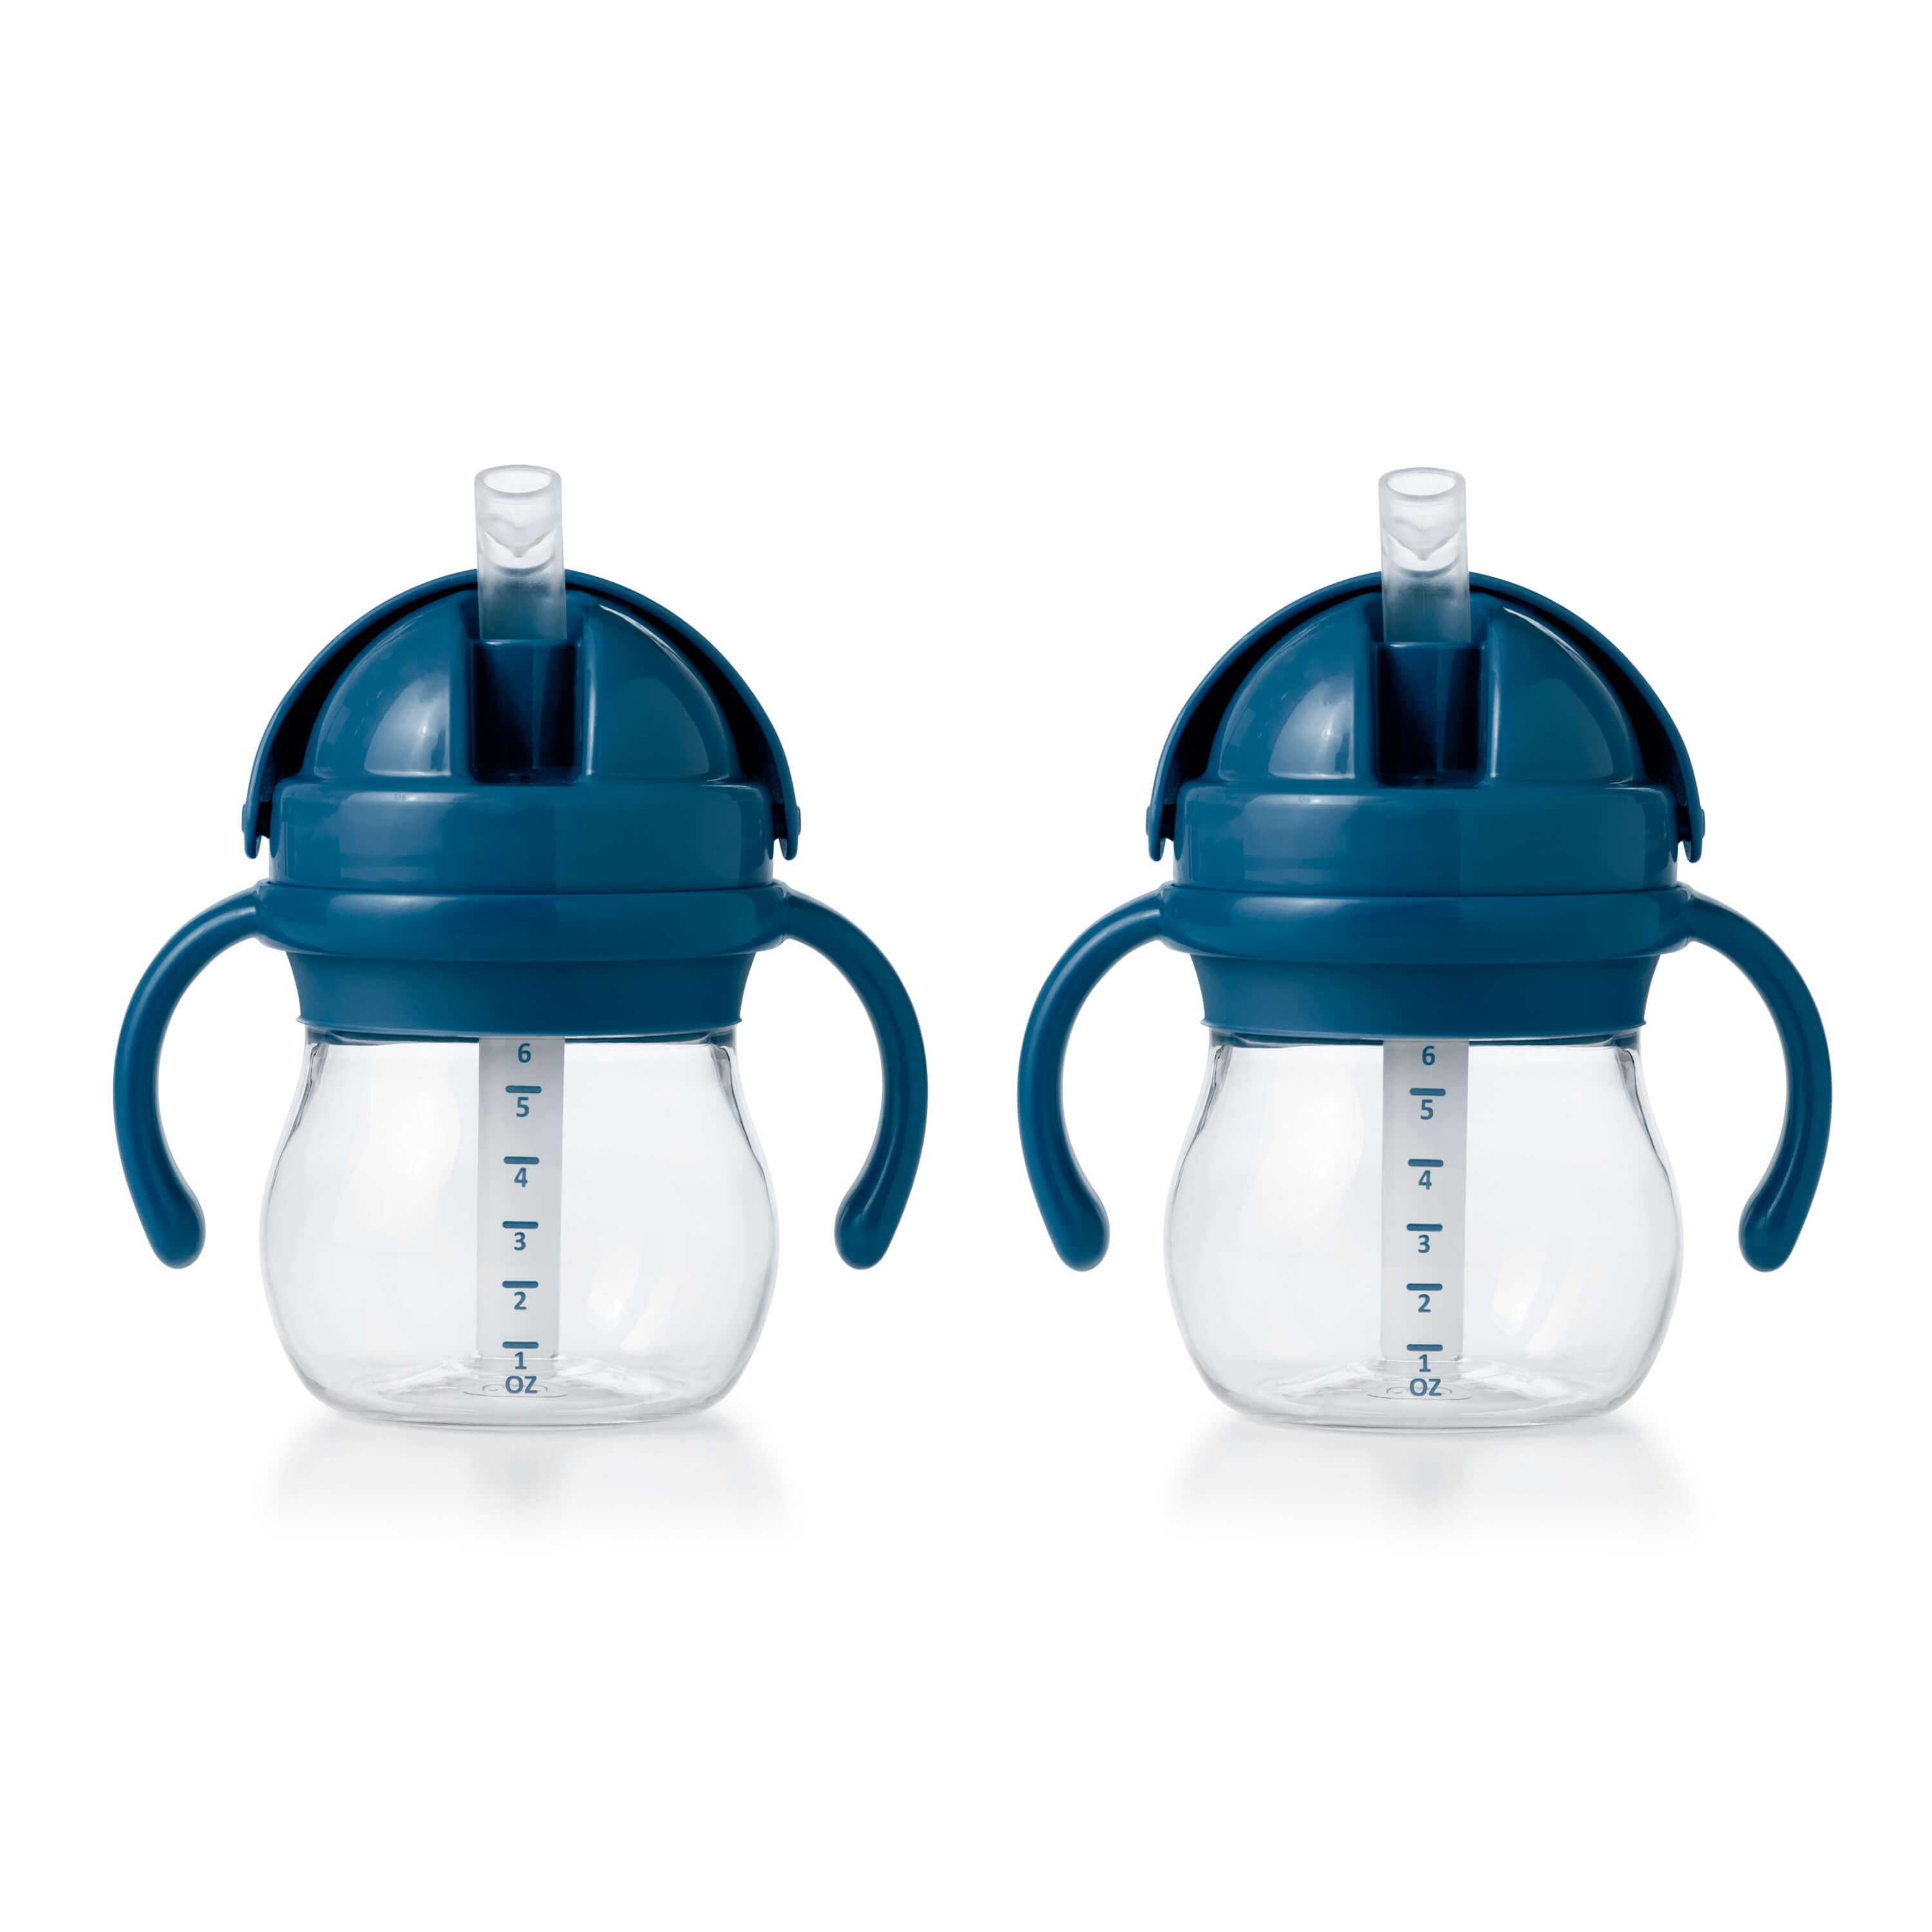 Transitions 6 oz Straw Cup with Handles Set